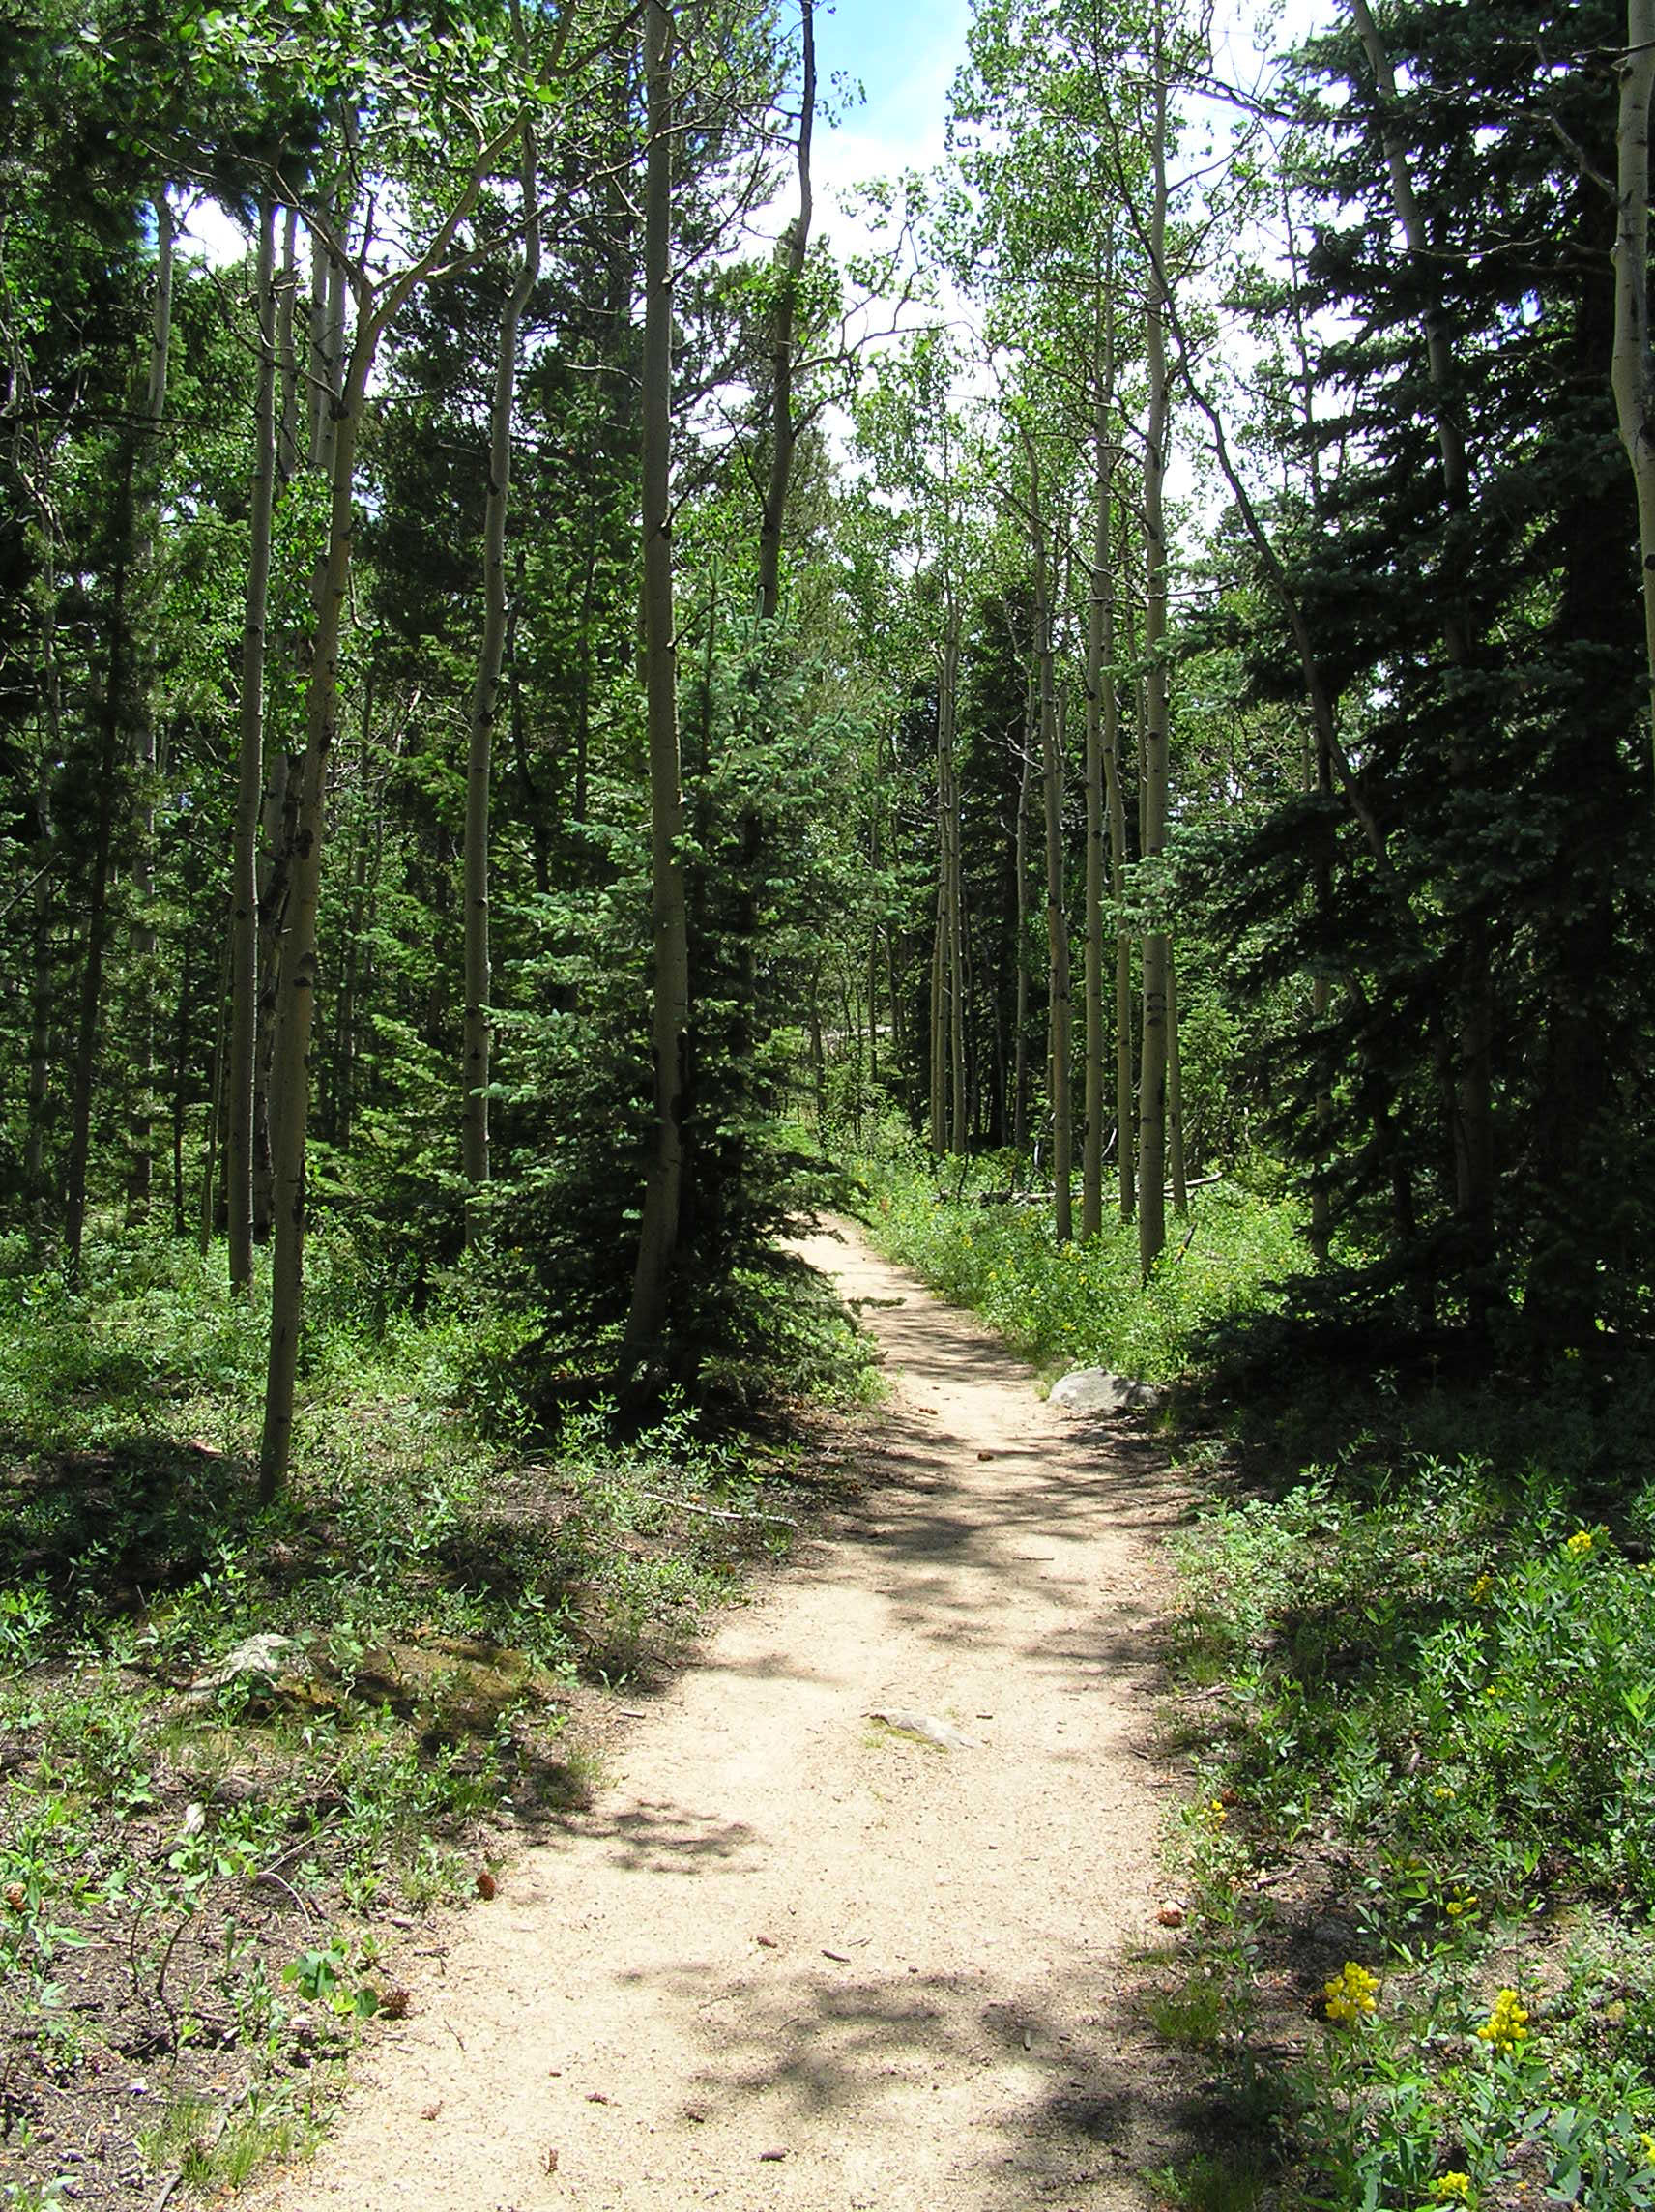 Top ten health benefits of hiking | Have fun. Stay safe ...